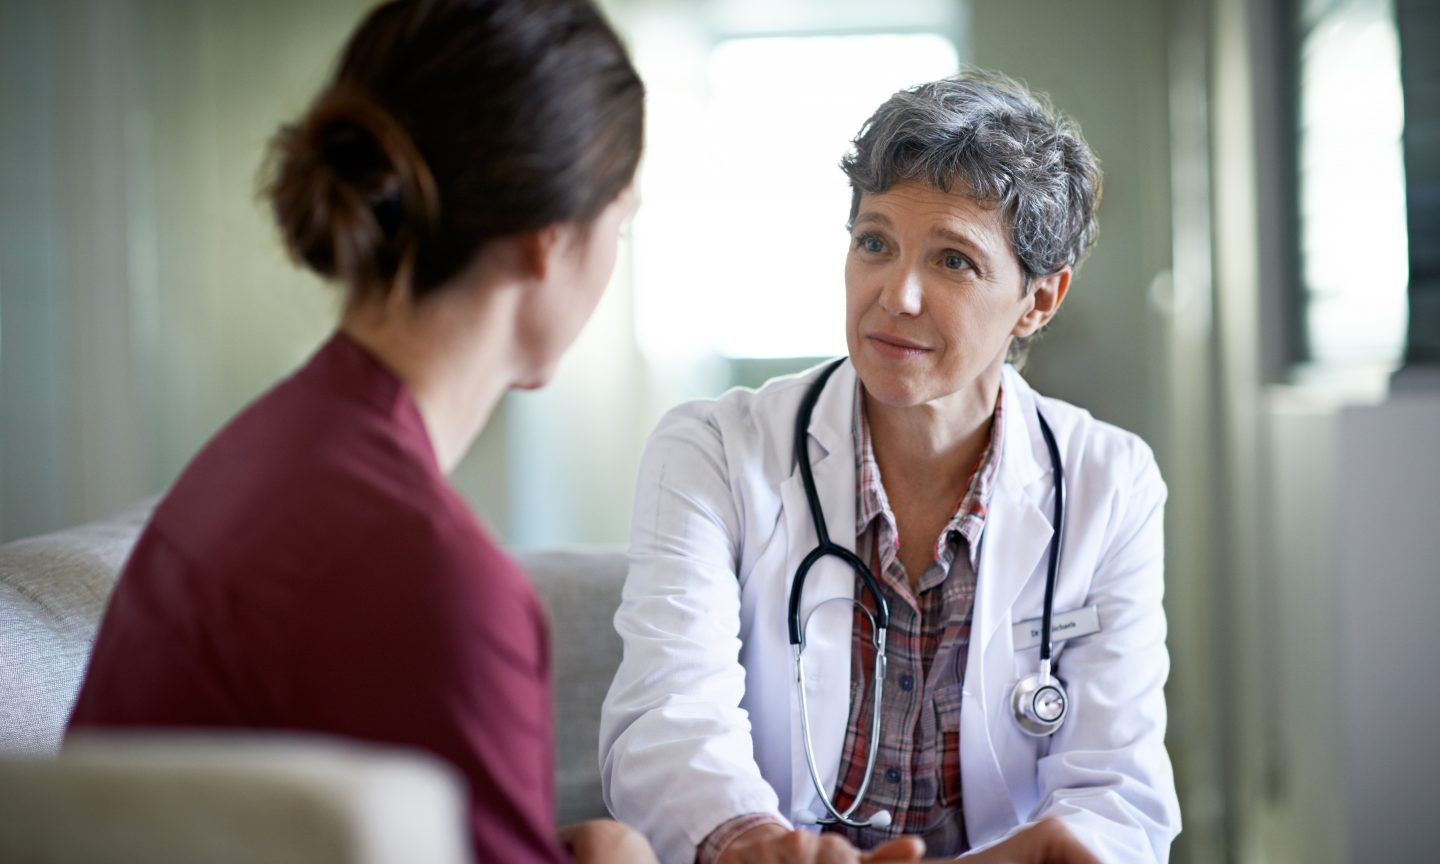 Take Control Now With Advance Medical Directives - NerdWallet